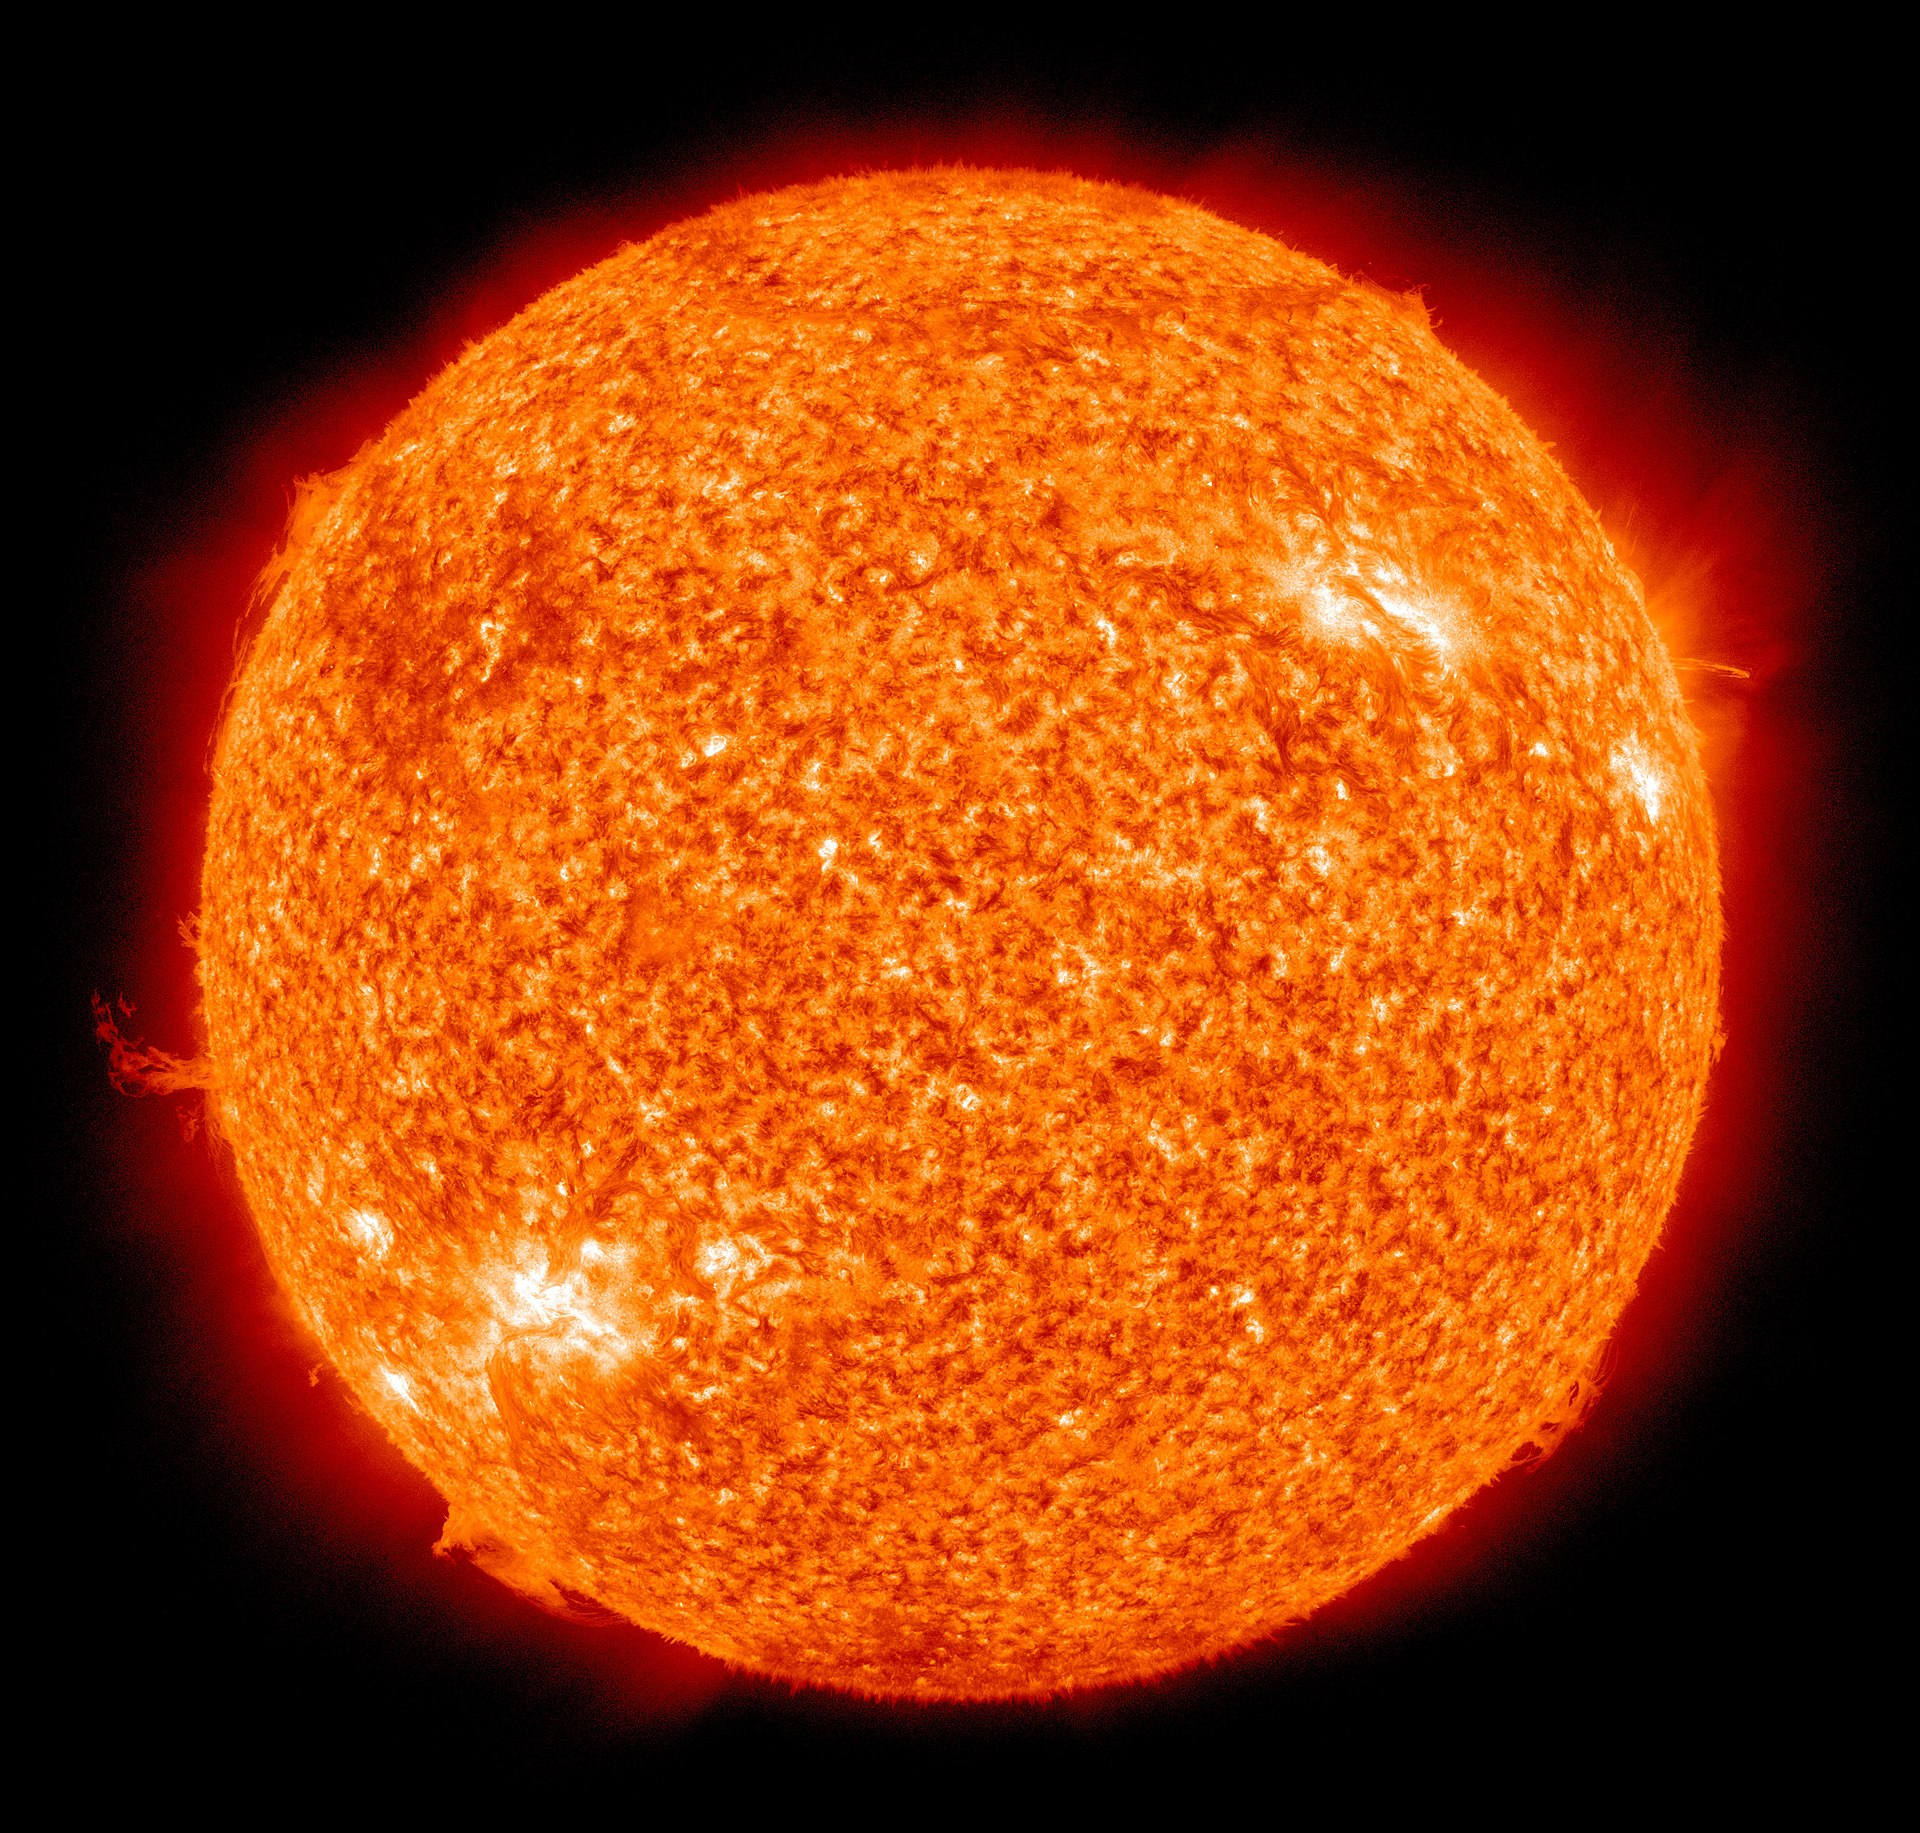 The Sun photographed at 304 angstroms by the Atmospheric Imaging Assembly (AIA 304) of NASA's Solar Dynamics Observatory